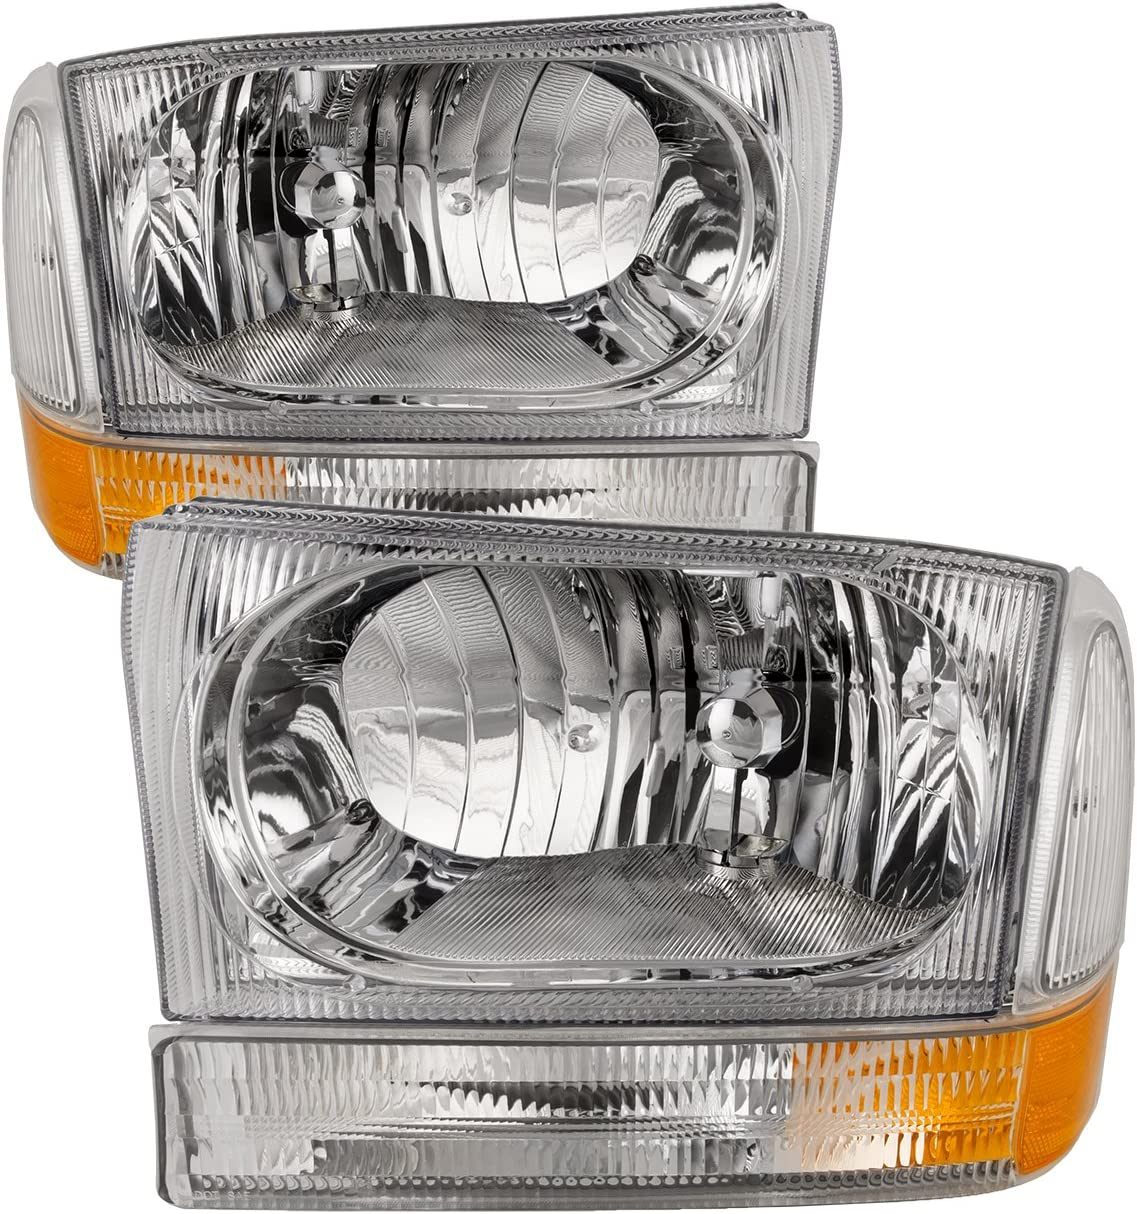 HEADLIGHTSDEPOT Chrome Halogen Headlights 4-Piece Set with Corners Clear Fluted Stock Style Compatible with Ford Excursion F-250 Super Duty F-350 F-450 F-550 Includes Left and Right Side Headlamps